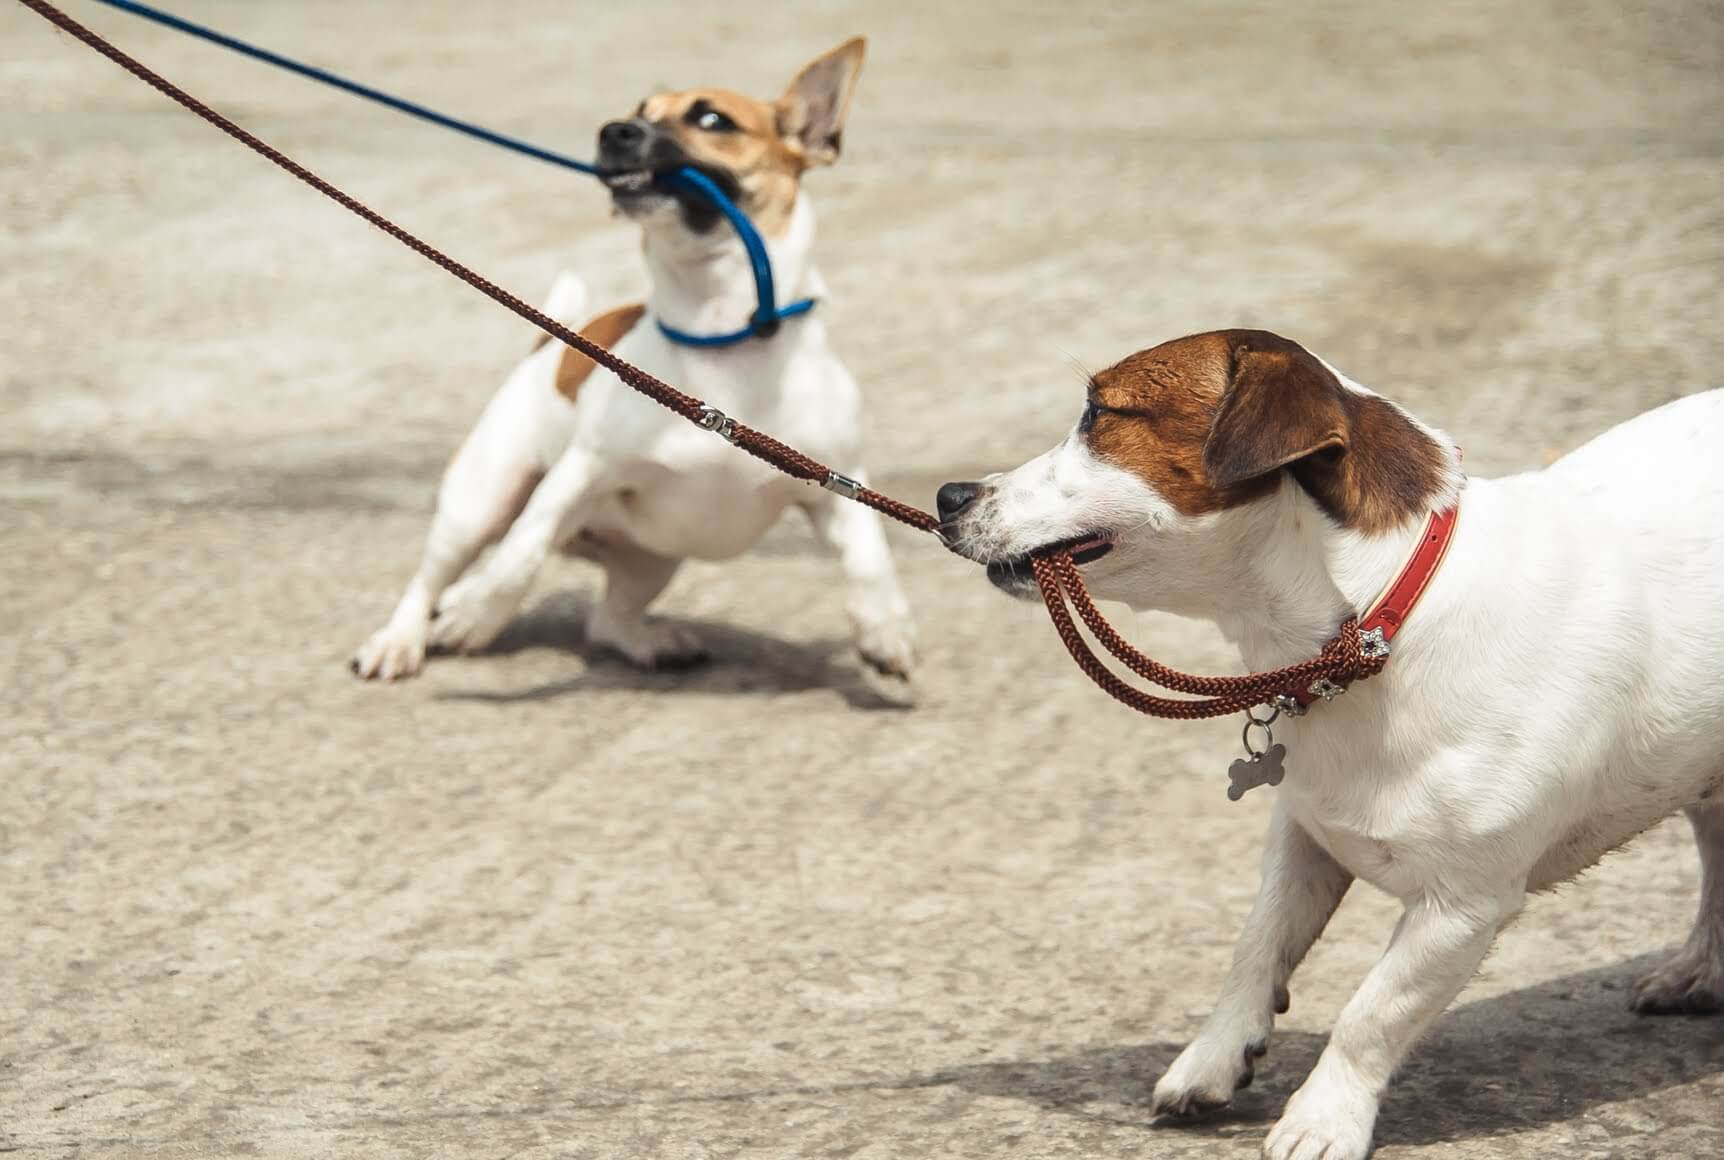 The key to changing excitable and disobedient dogs into calmer, better-behaved petsis to reinforce calm, settled behaviorrather than punishing what you don't want.